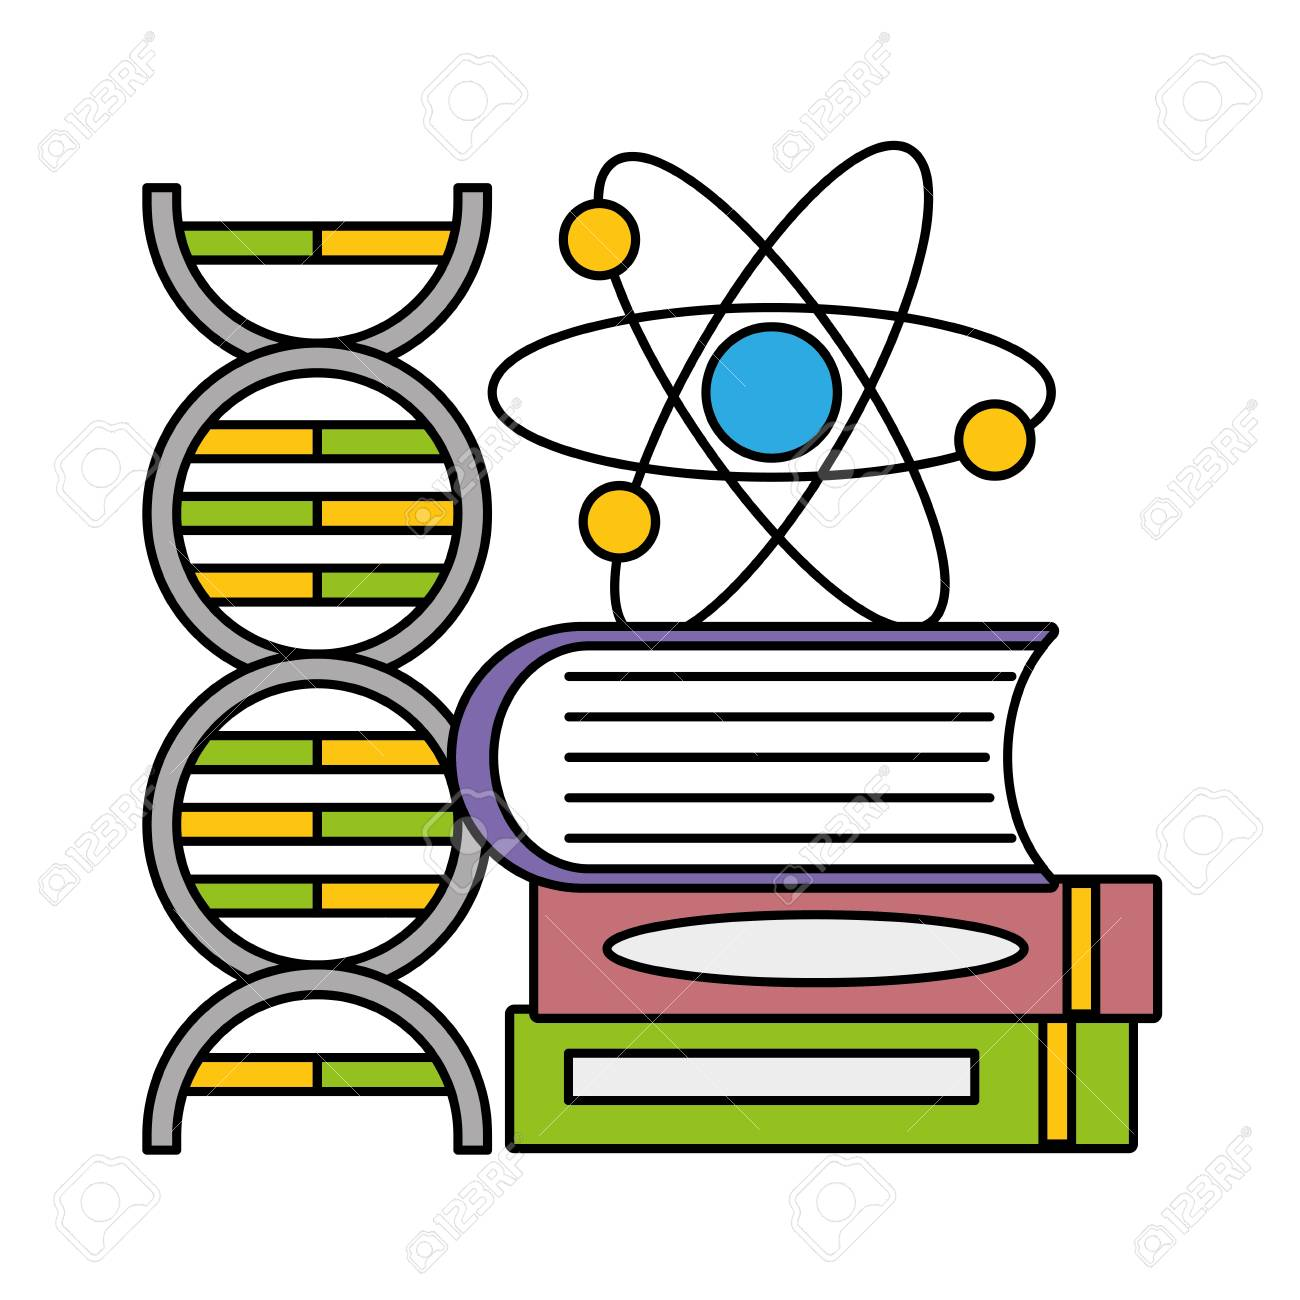 DNA Nucleic Acid Double Helix Clip Art Biology - Heredity - Dna  Transparency And Translucency Transparent PNG